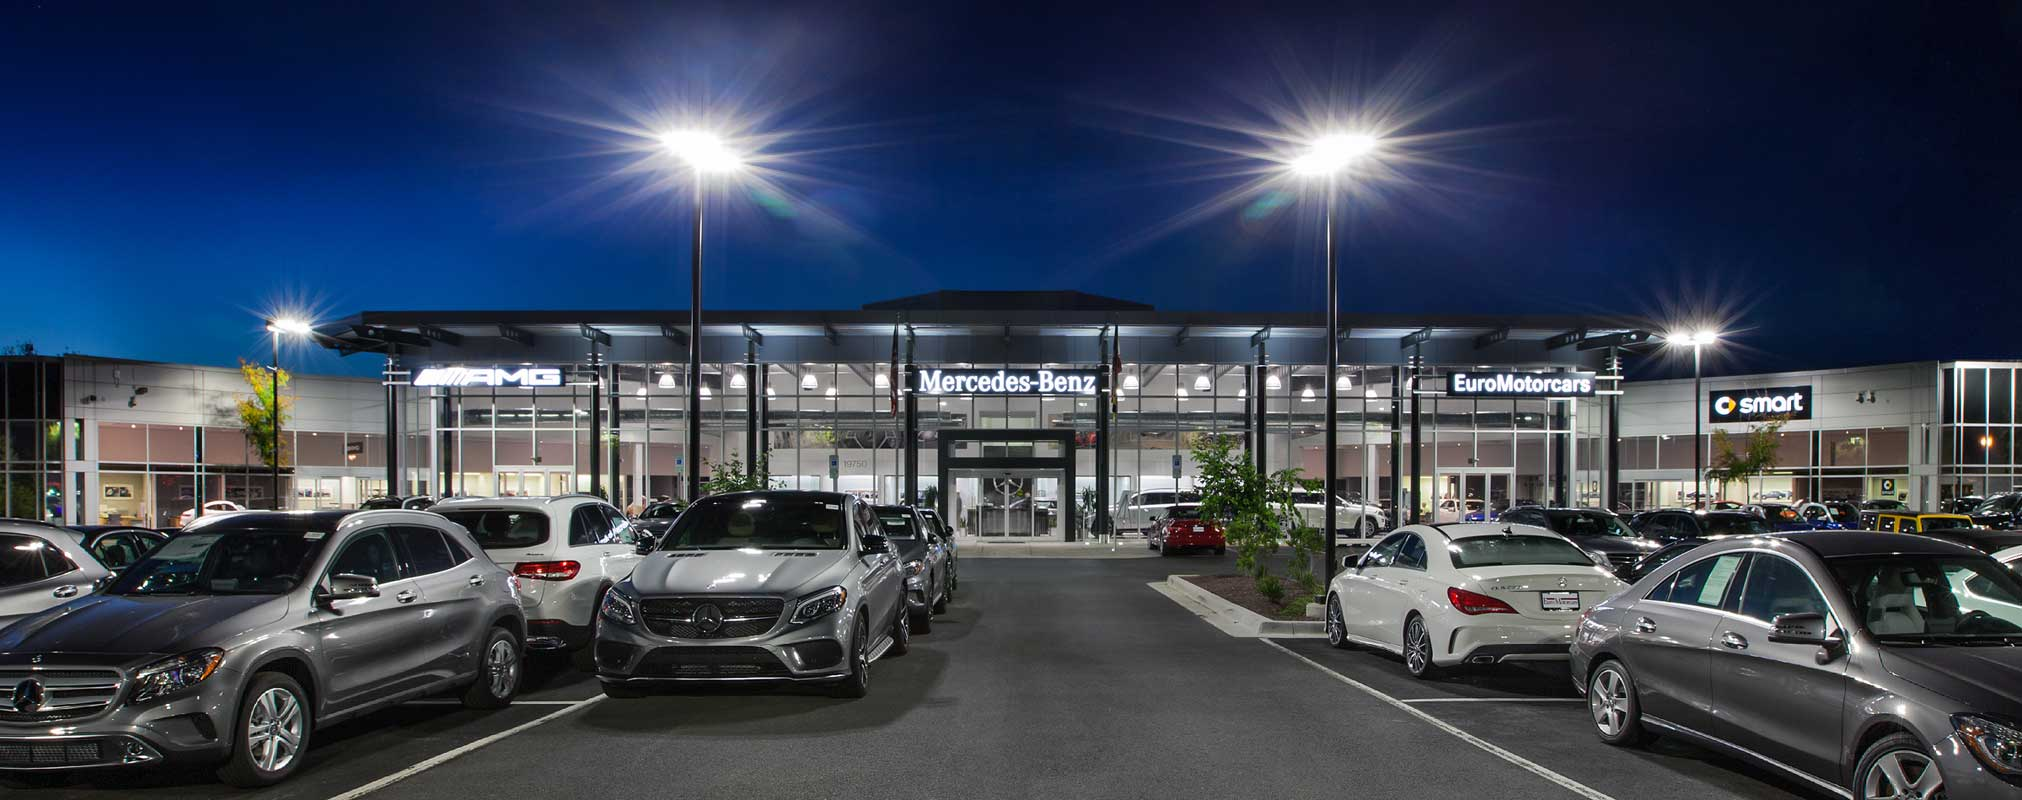 Euromotorcars Germantown Penney Design Group